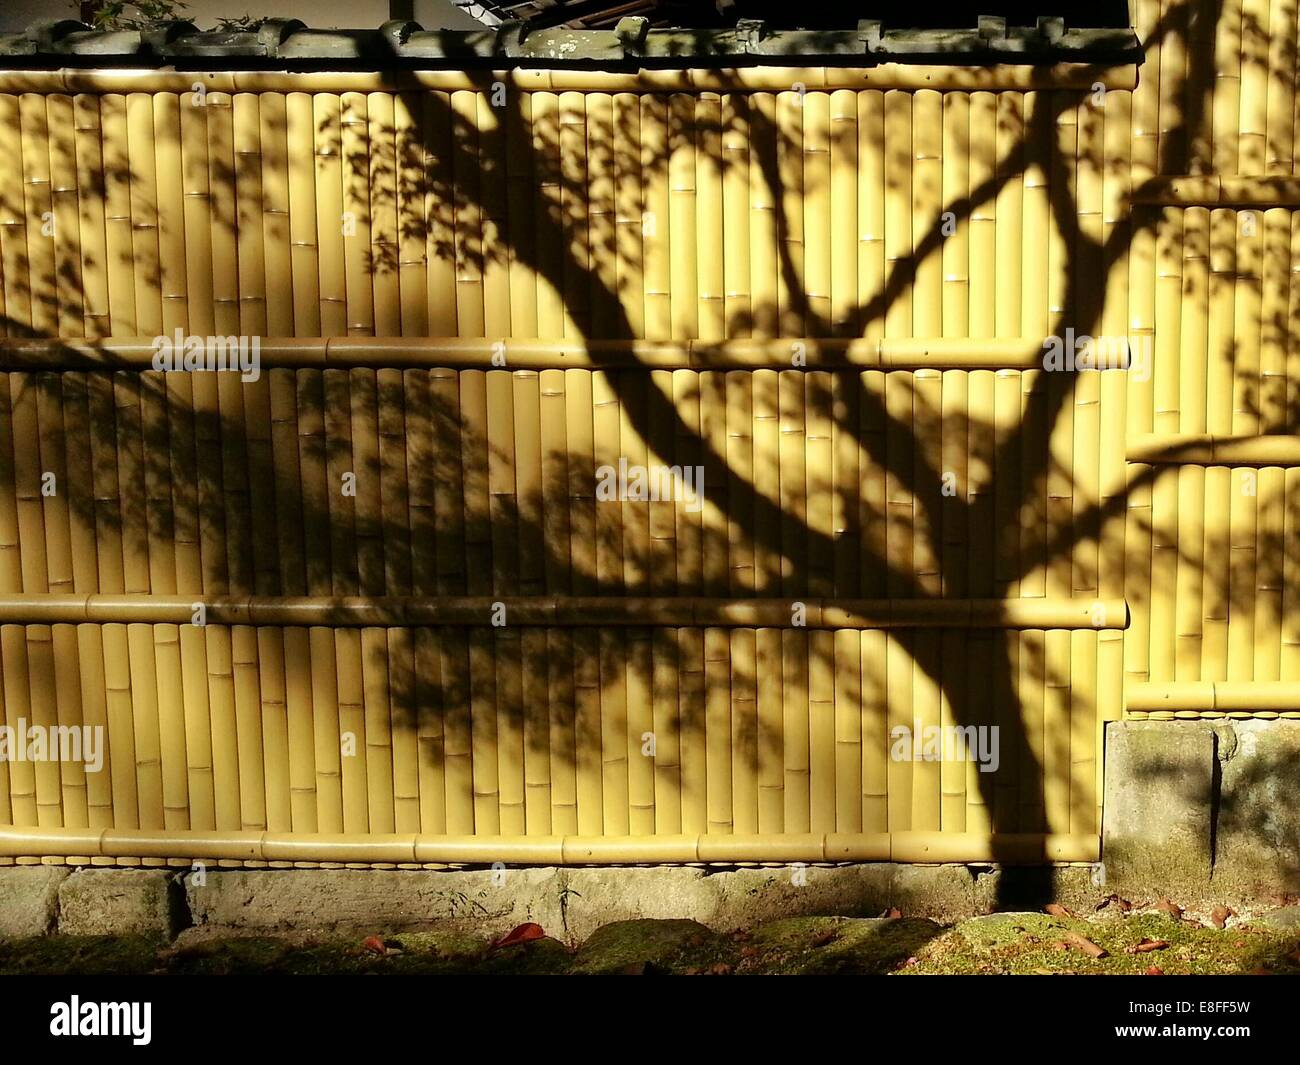 Shadow of tree on bamboo fence, Japan - Stock Image